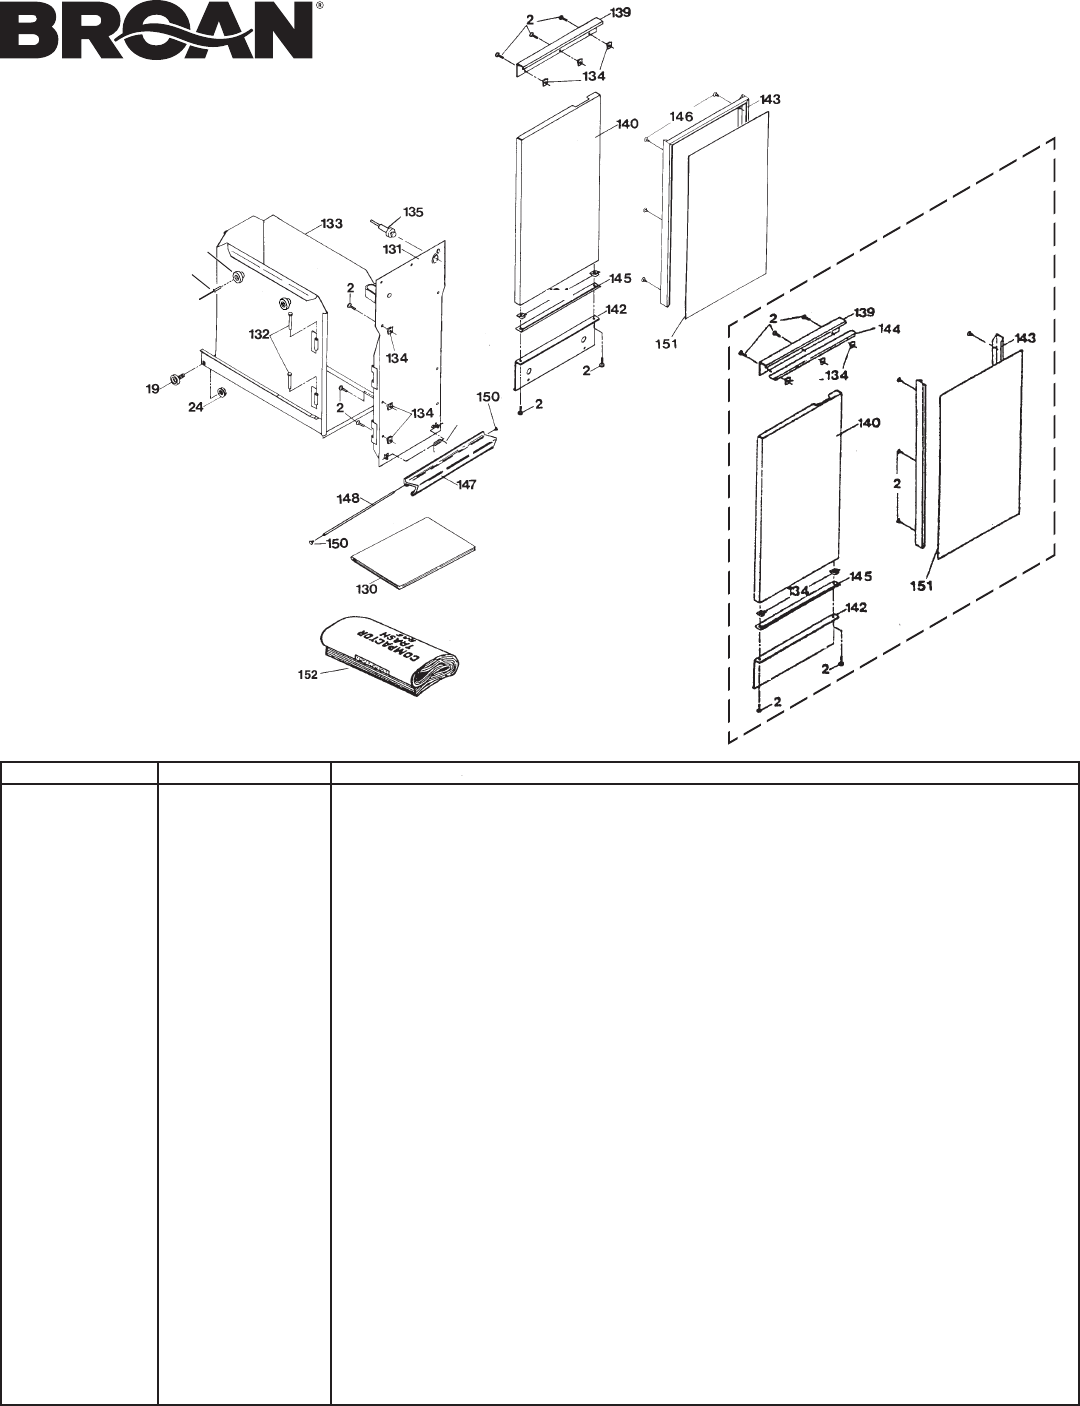 Broan Compactor Parts Diagram Wiring Will Be A Thing 1050 Electrical Diagrams Page 12 Of Trash J User Guide Manualsonline Com Rh Kitchen Inch Wide Models